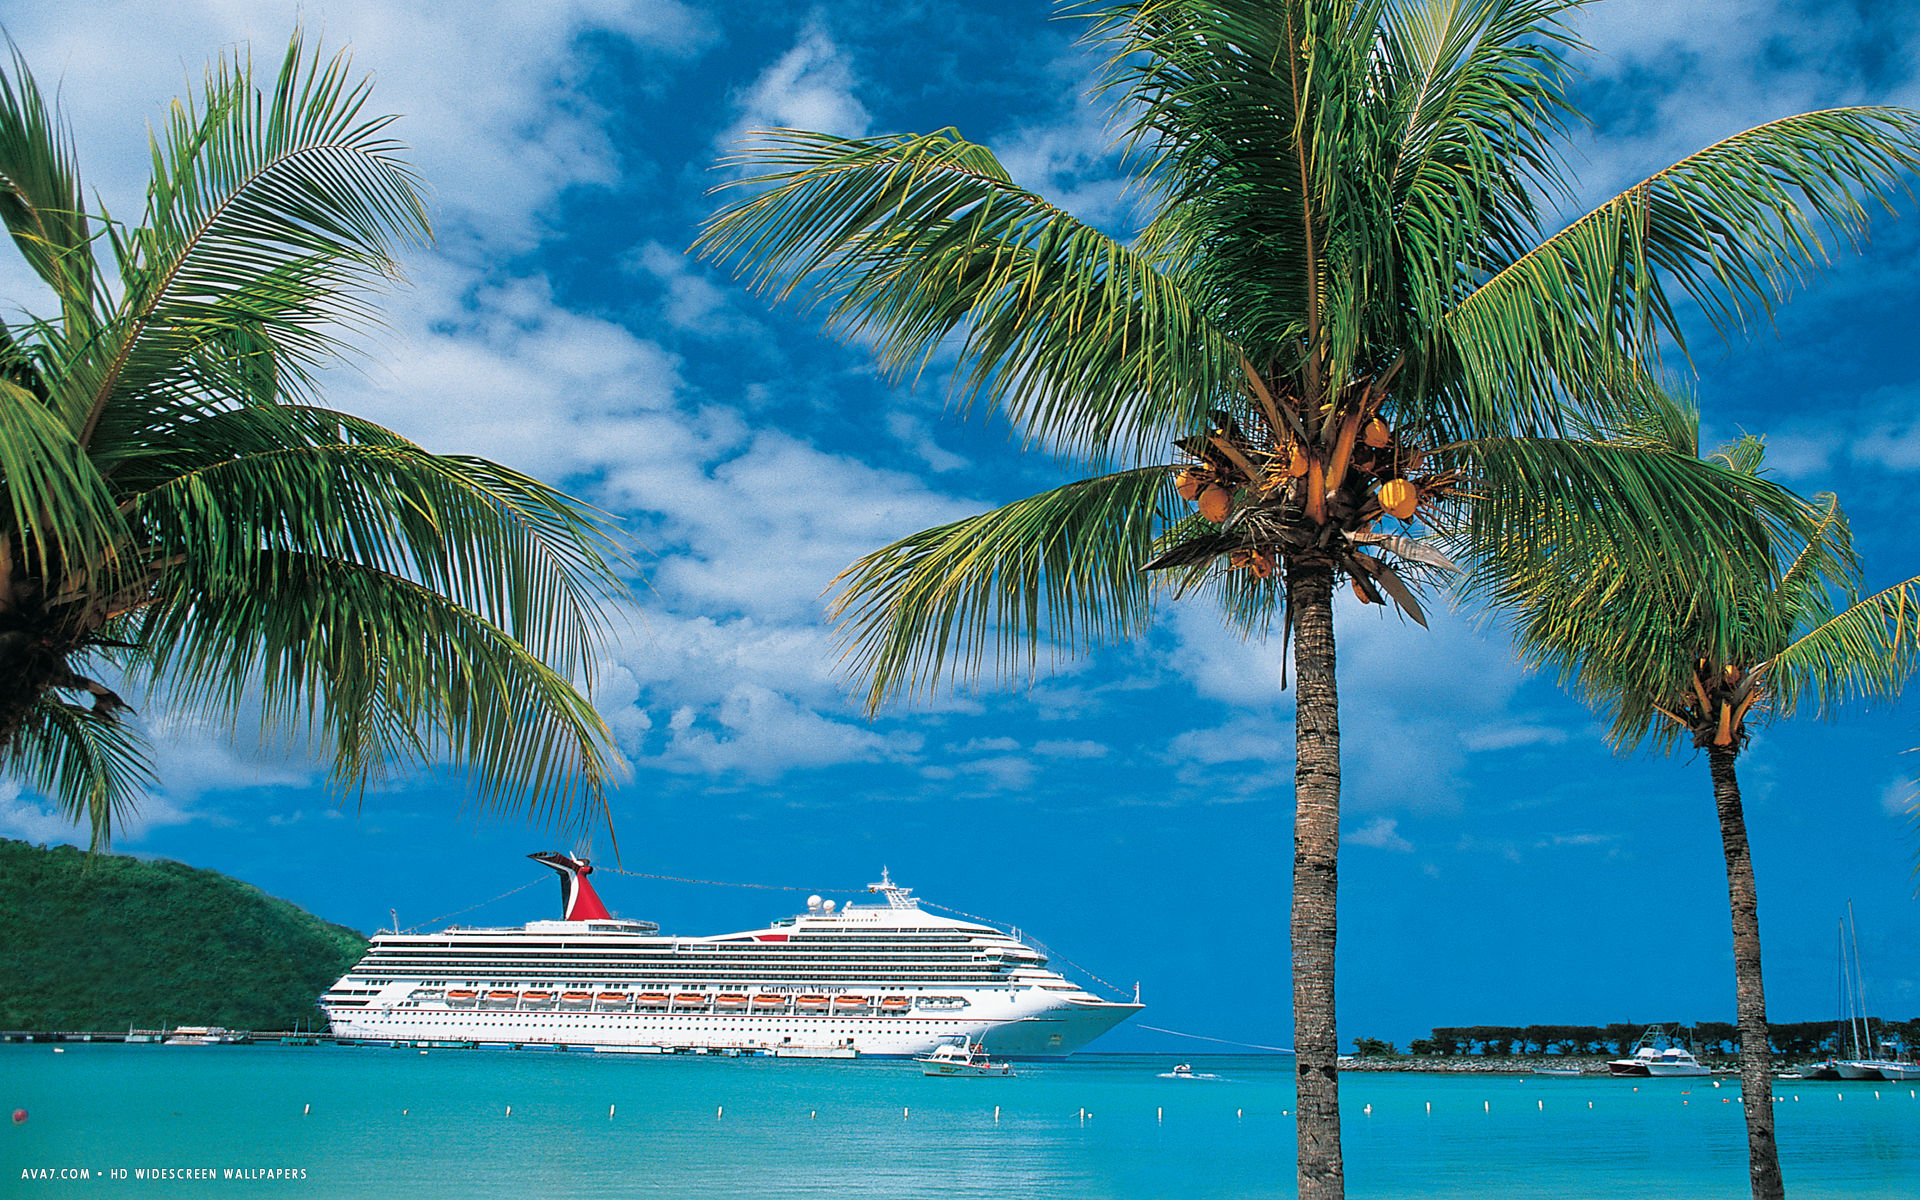 carnival victory cruise ship hd widescreen wallpaper cruise ships 1920x1200